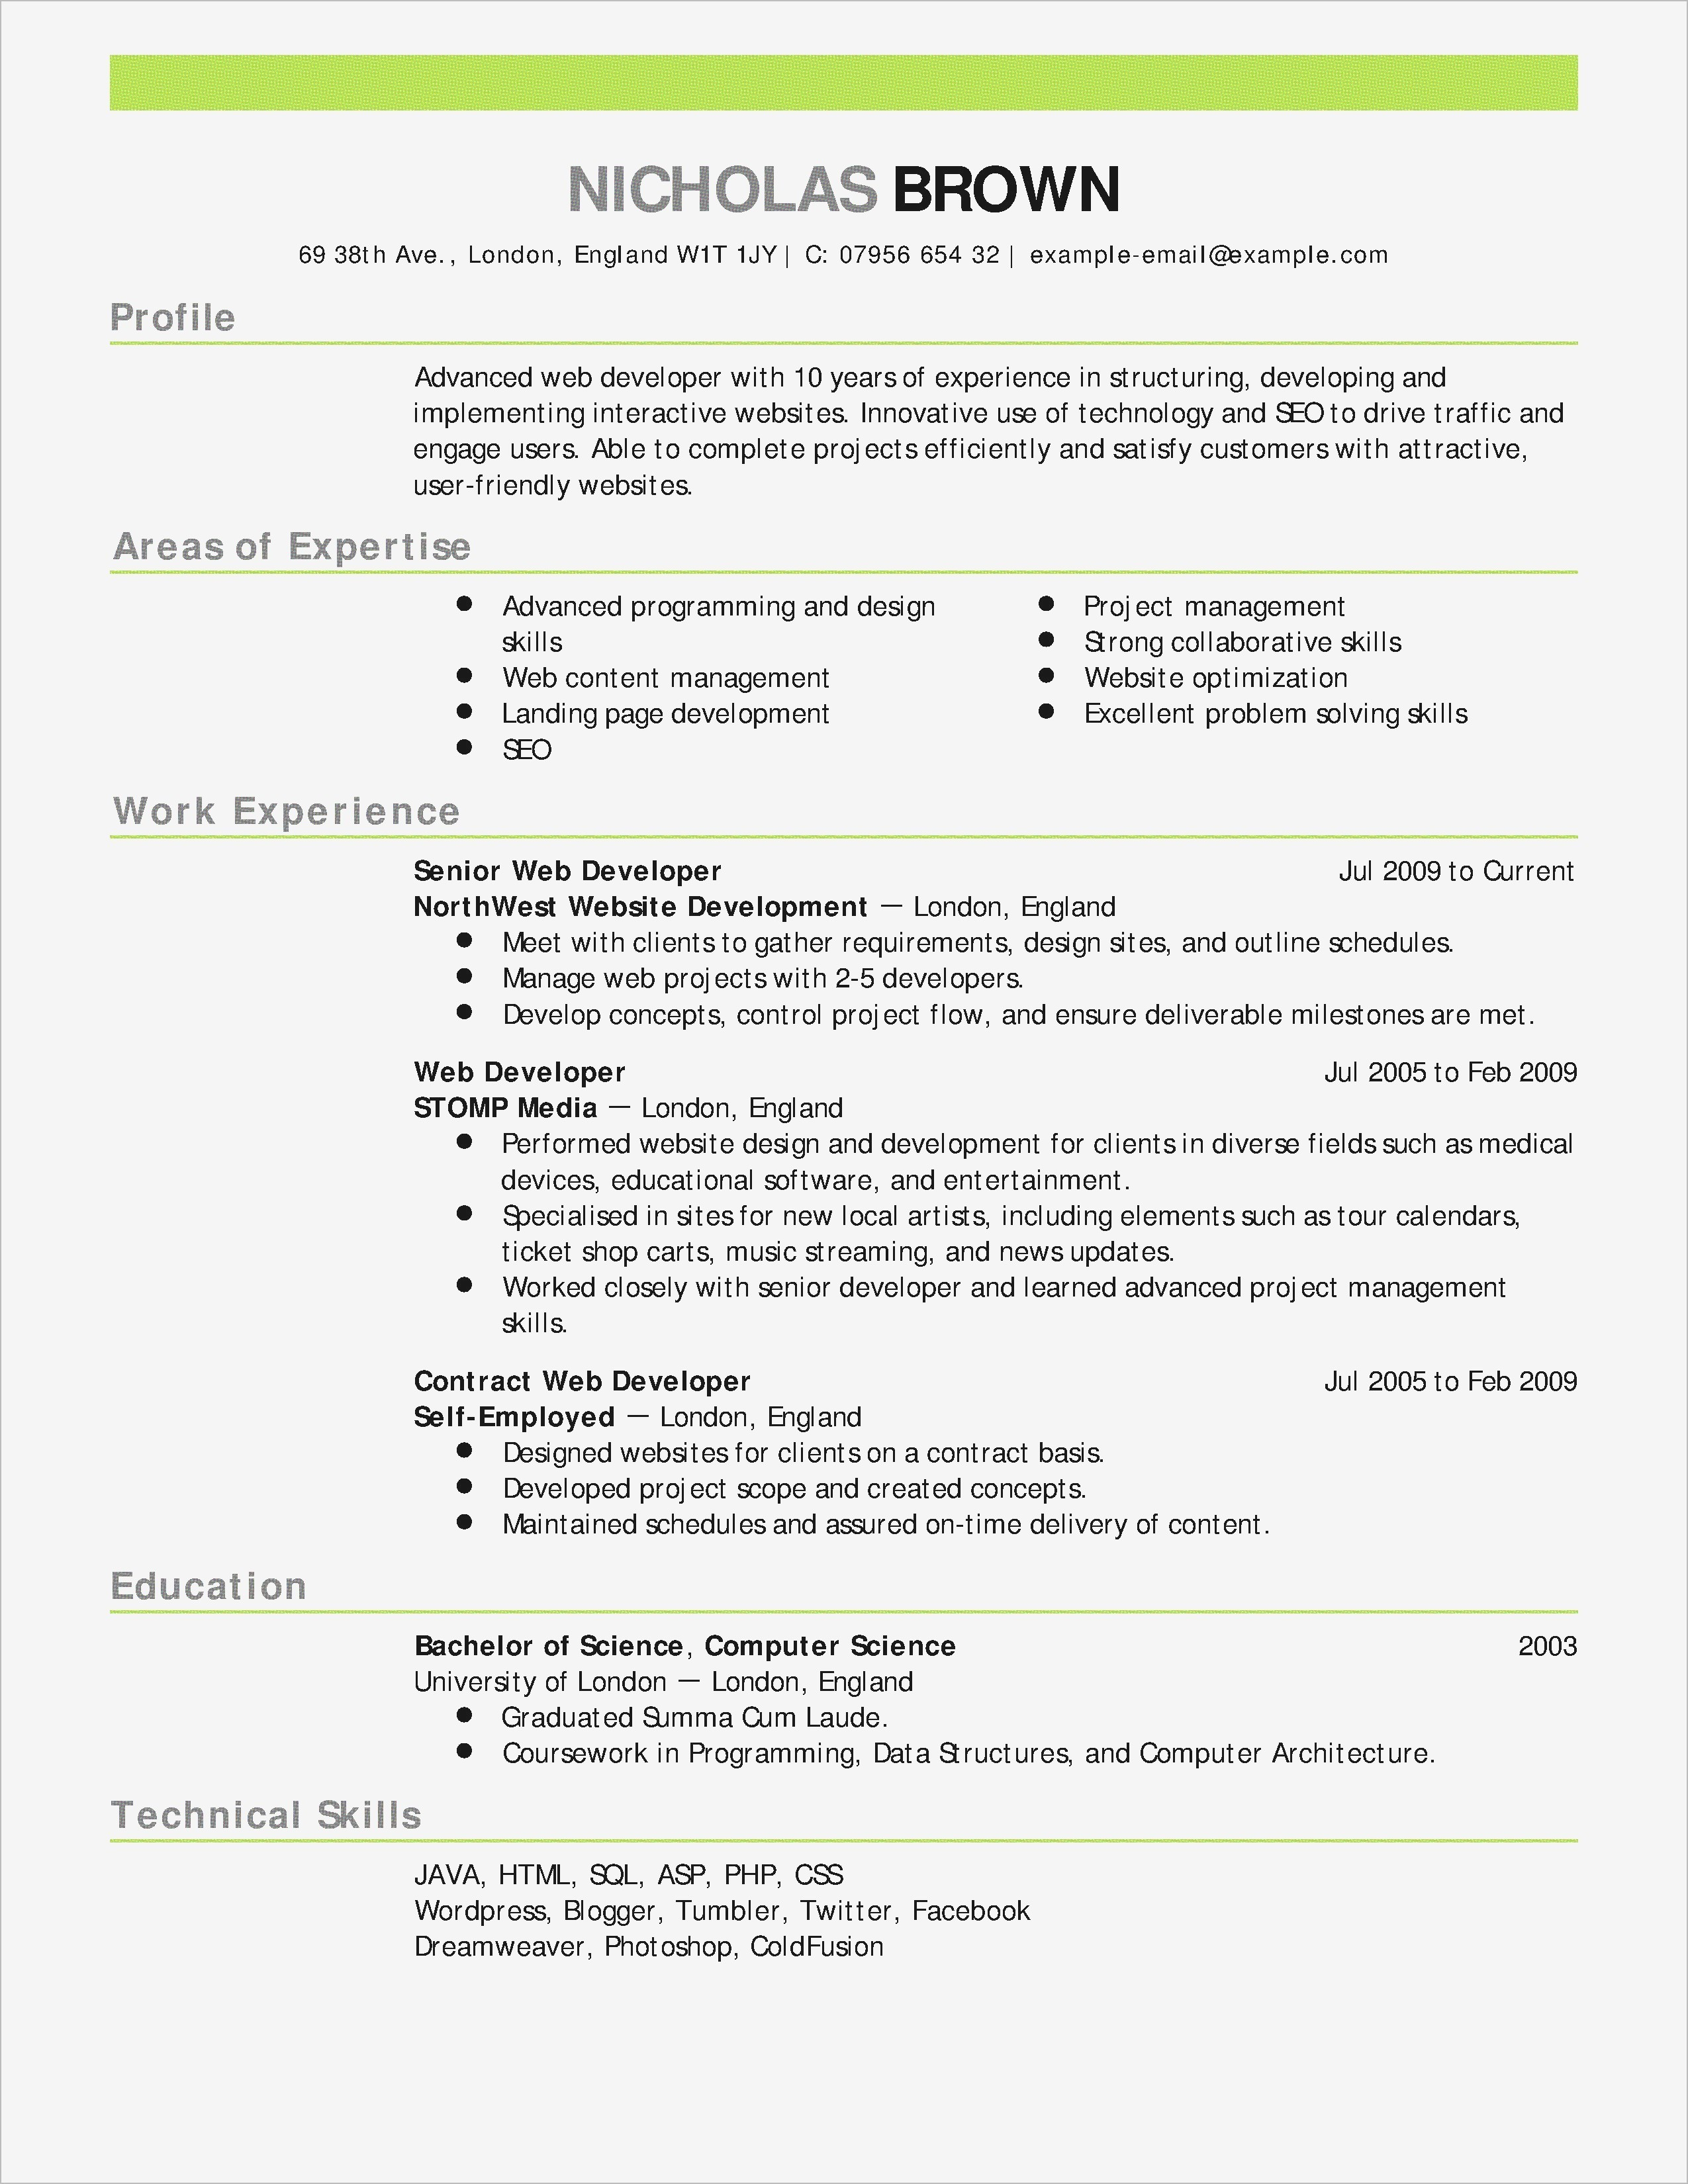 fox school of business resume template Collection-Fun Resume Templates 3-t